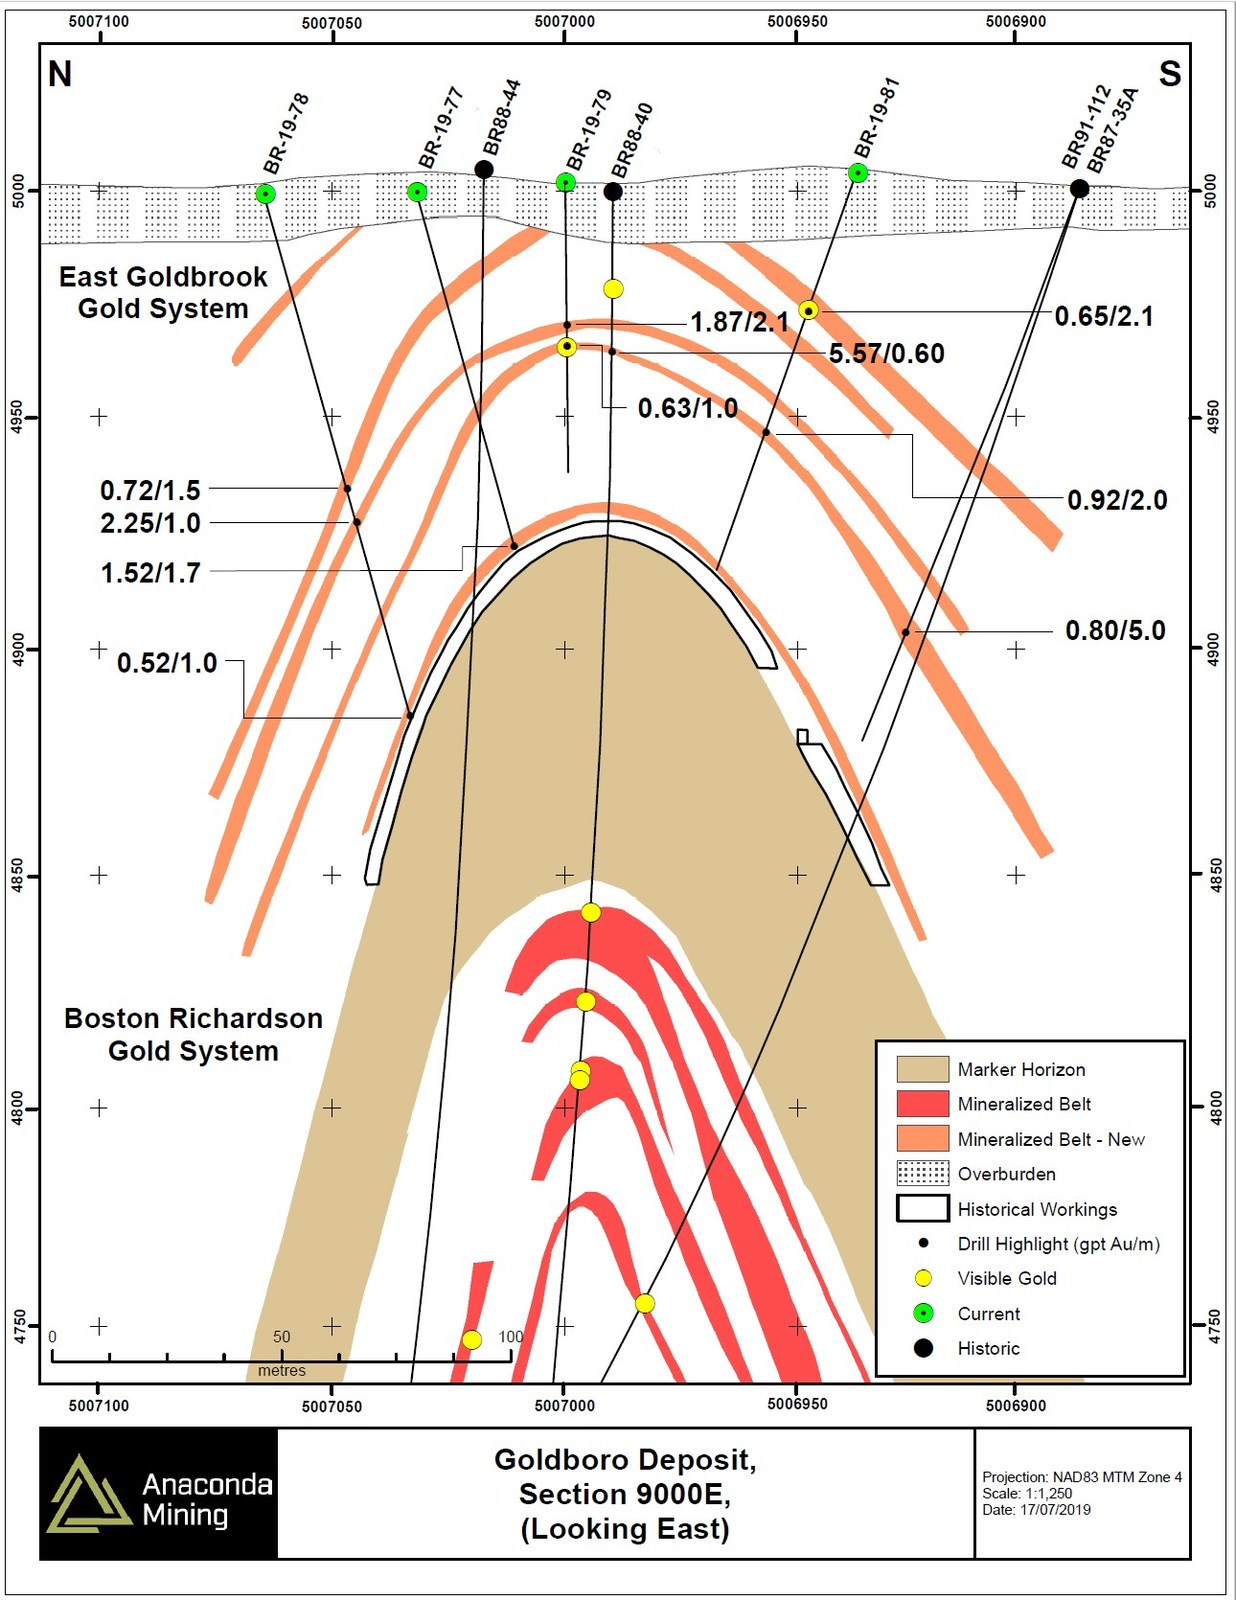 Exhibit B. North – South oriented Section 9000E through the Goldboro Deposit showing the extension of mineralized zones of the EG Gold System to surface immediately above the Marker Horizon and in the immediate hanging wall of historic mining. The intersected mineralization is less than 70 metres from surface and five zones of mineralization projected back to surface.